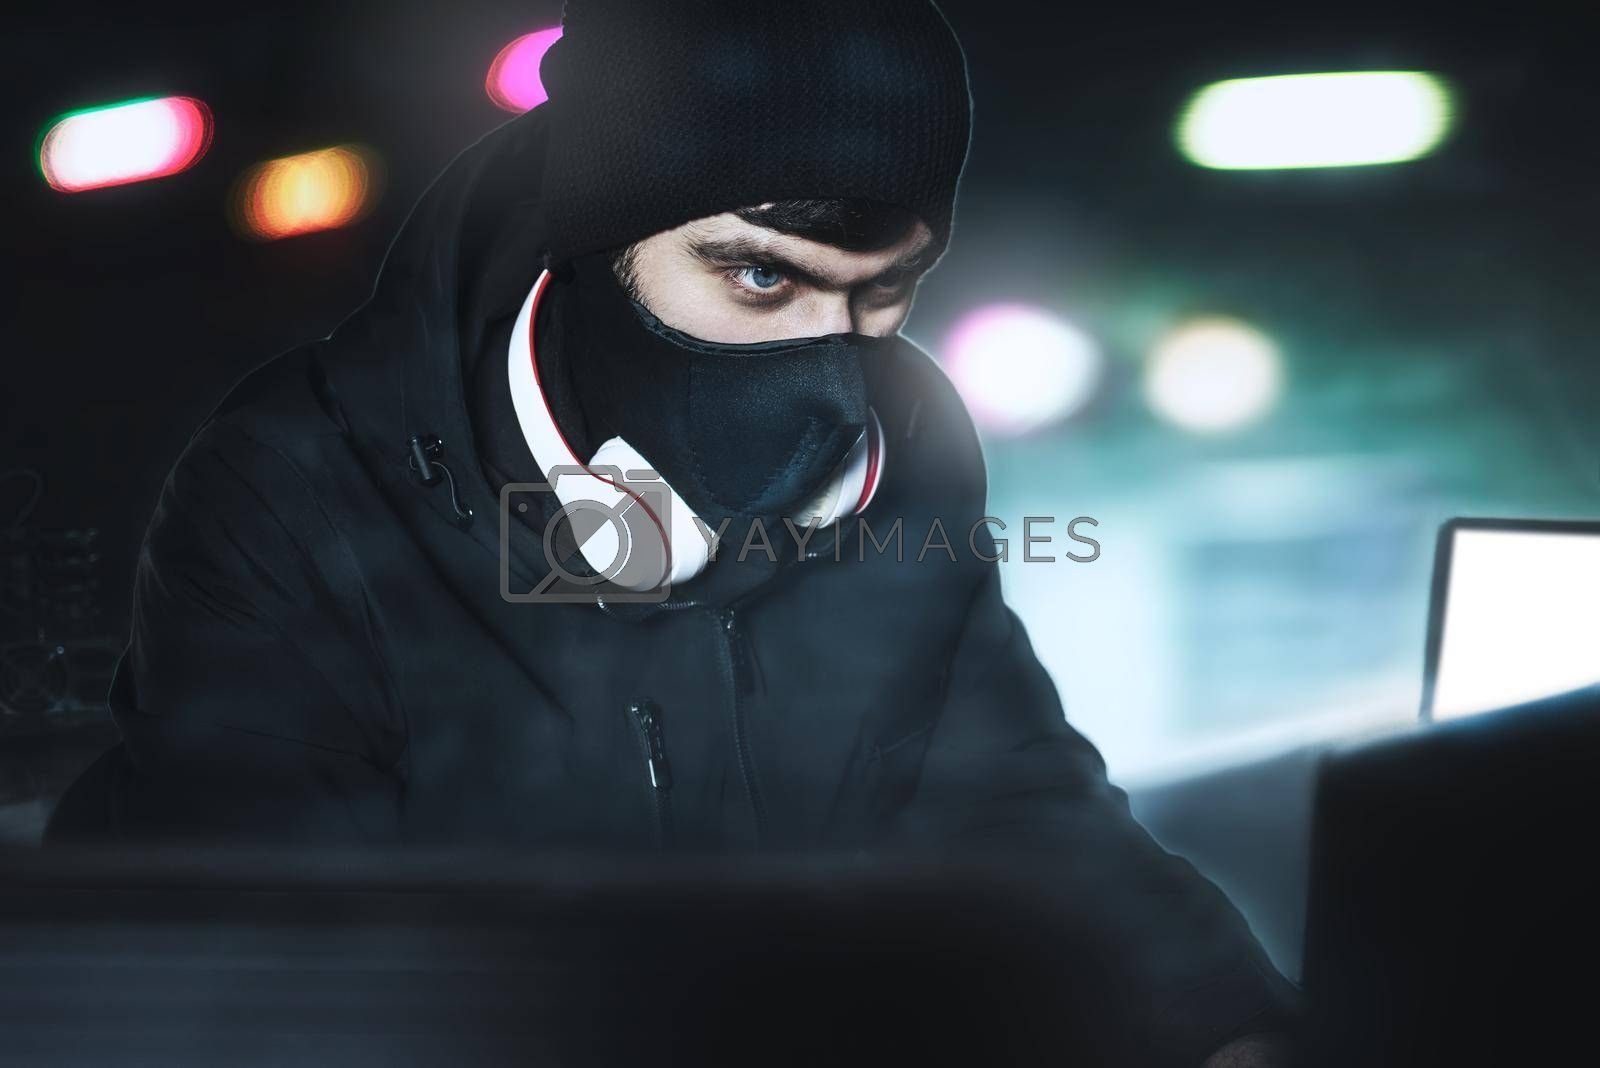 Royalty free image of Angry computer hacker weared balaclava stealing data from laptop in front of black background and blue light. close portrait. by Nickstock